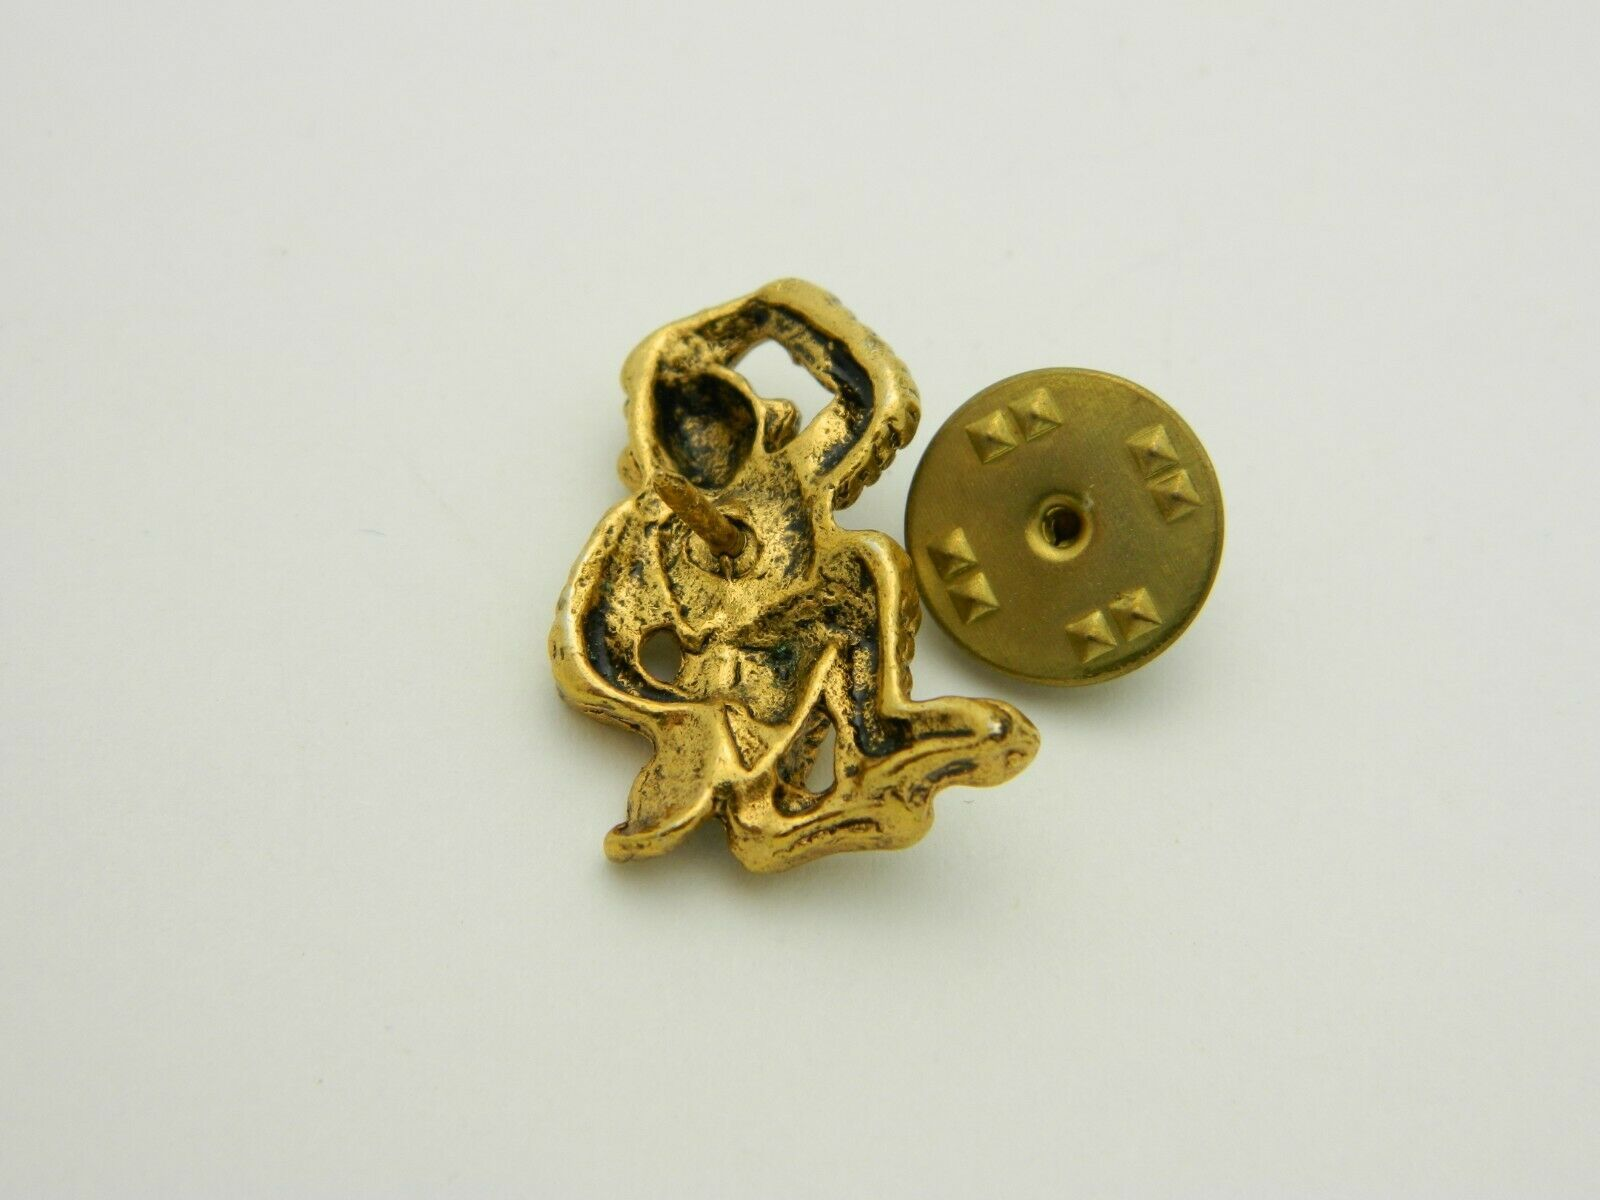 Monkey Scratching His Head Pondering Gold Tone Tie Tack Vintage image 4